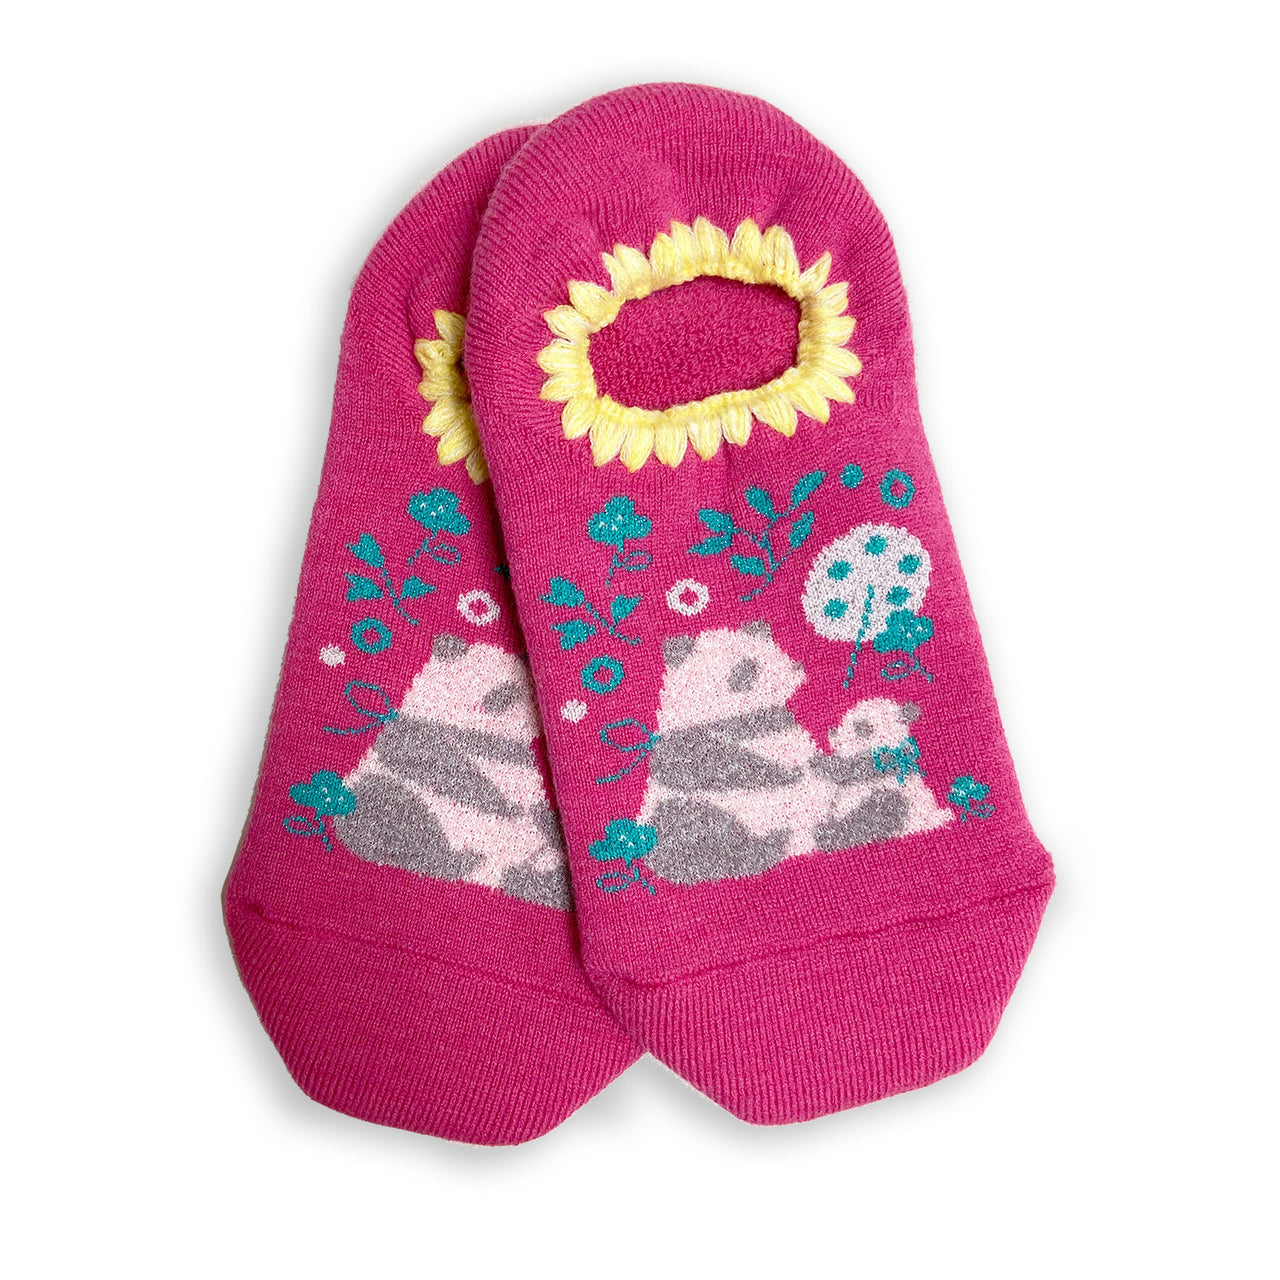 CHERRYSTONE® Slipper Socks | Animal Designs | Mom and Baby Panda Cub | Hot Pink - CHERRYSTONE by MARKET TO JAPAN LLC